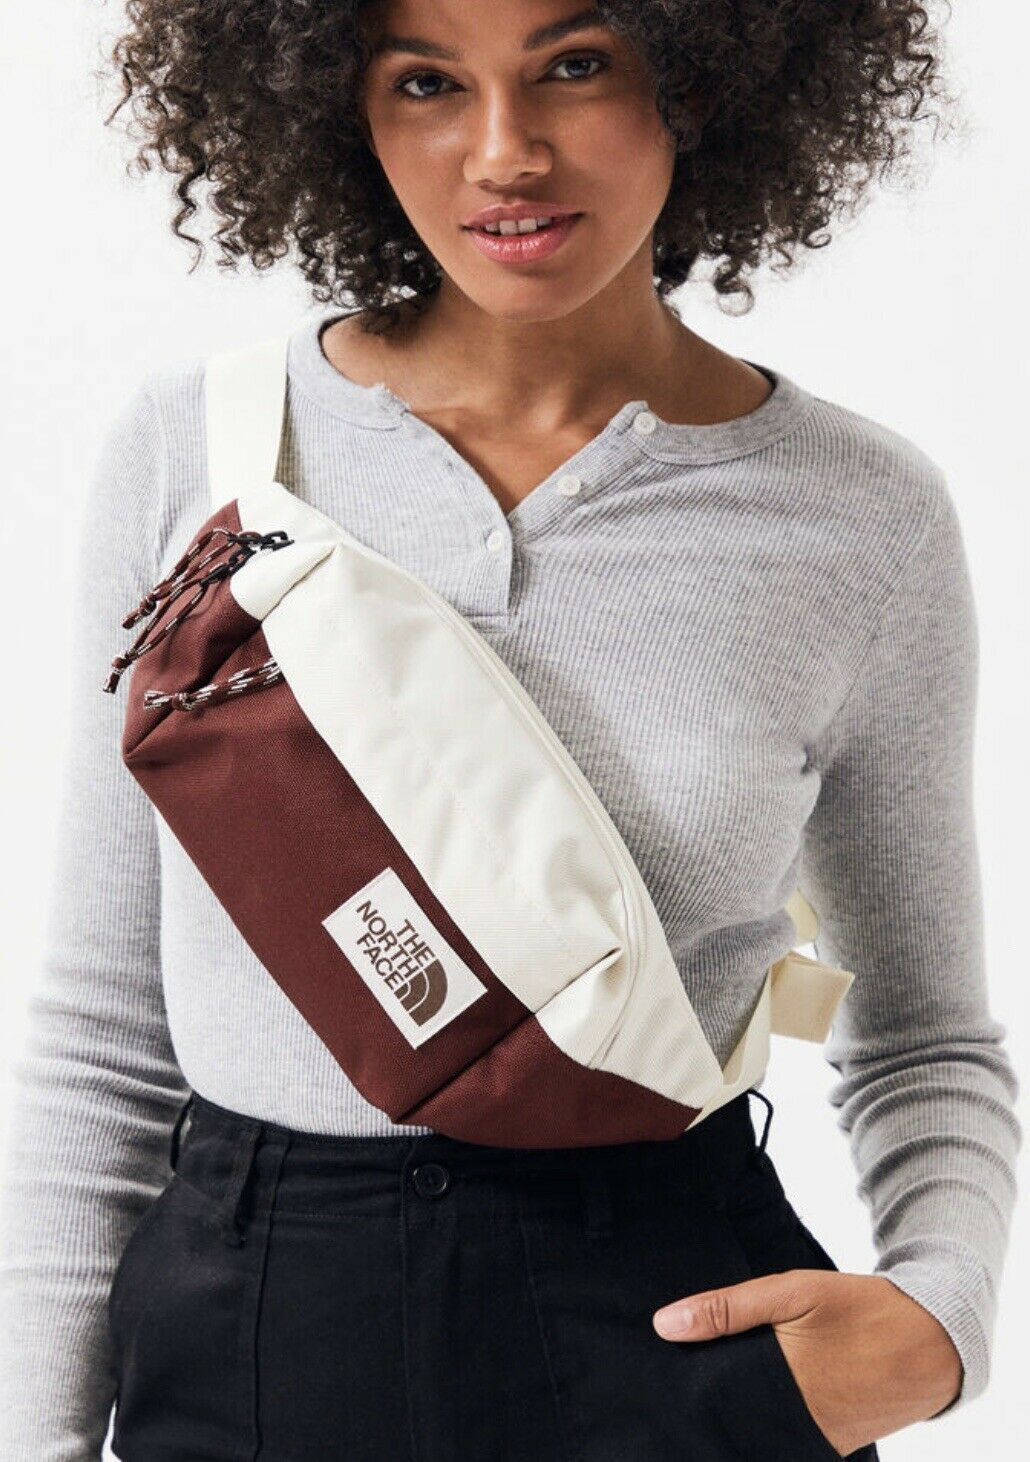 The North Face Lumbar Waist Fanny Pack Vintage White Red NWT - $33.85